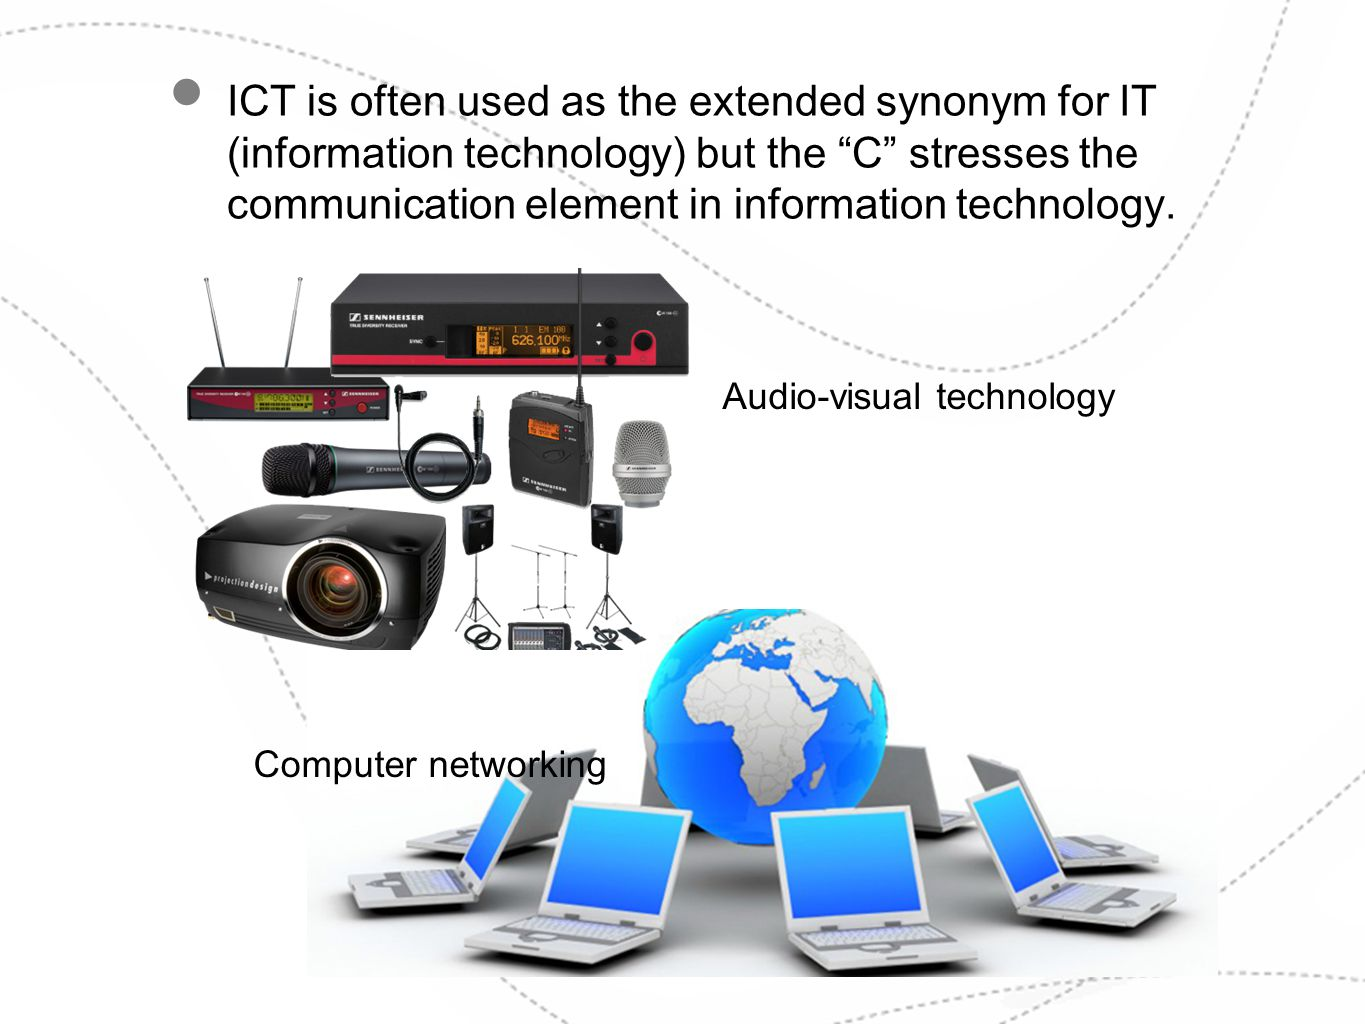 ICT is often used as the extended synonym for IT (information technology) but the C stresses the communication element in information technology. Audi